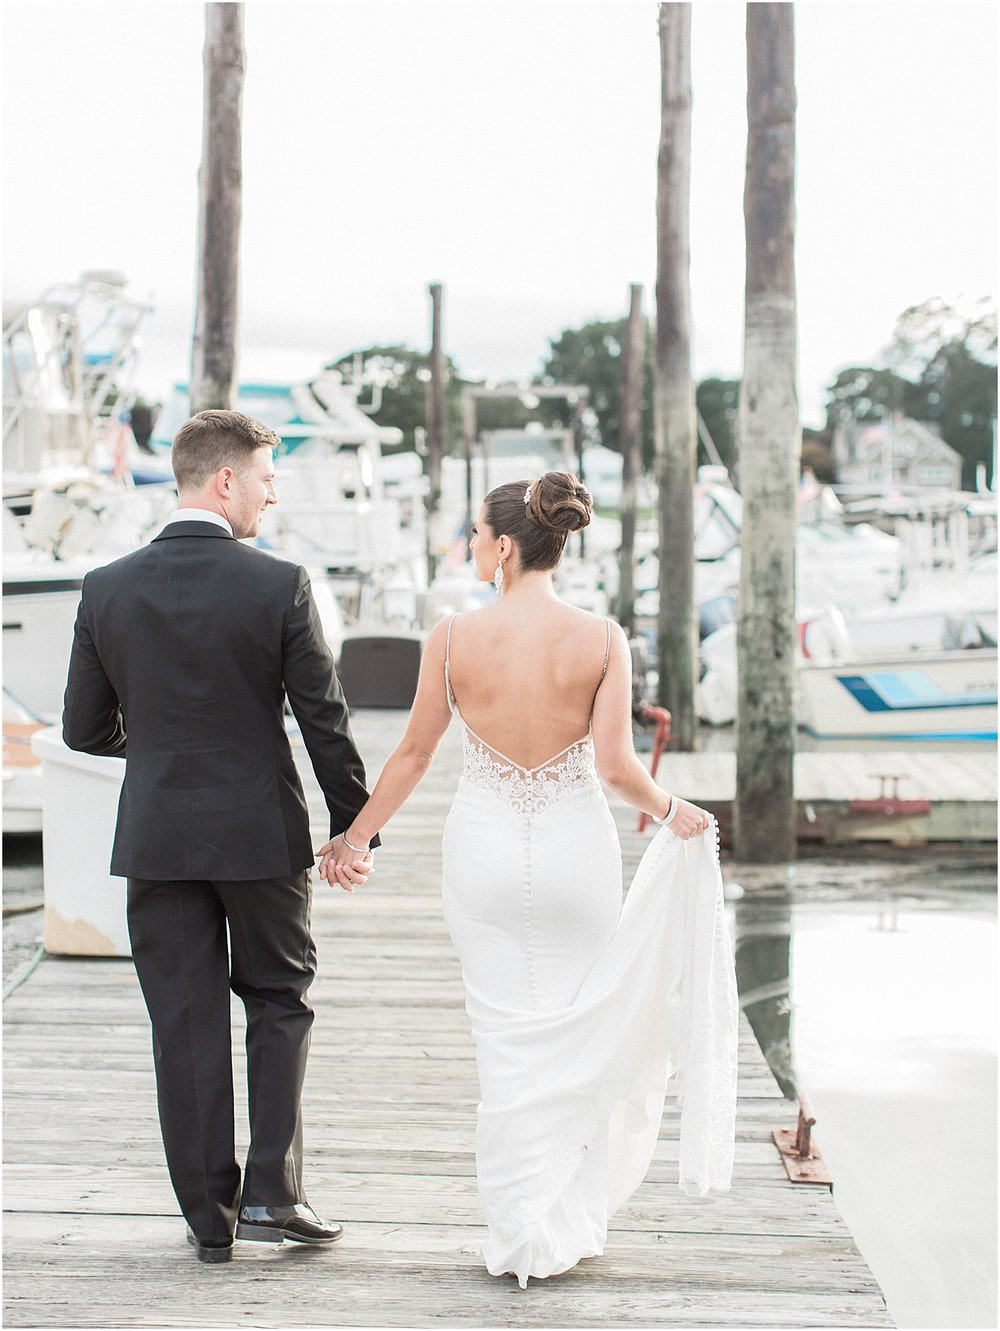 bianca_chris_danversport_italian_blush_gold_north_shore_cape_cod_boston_wedding_photographer_meredith_jane_photography_photo_1142.jpg